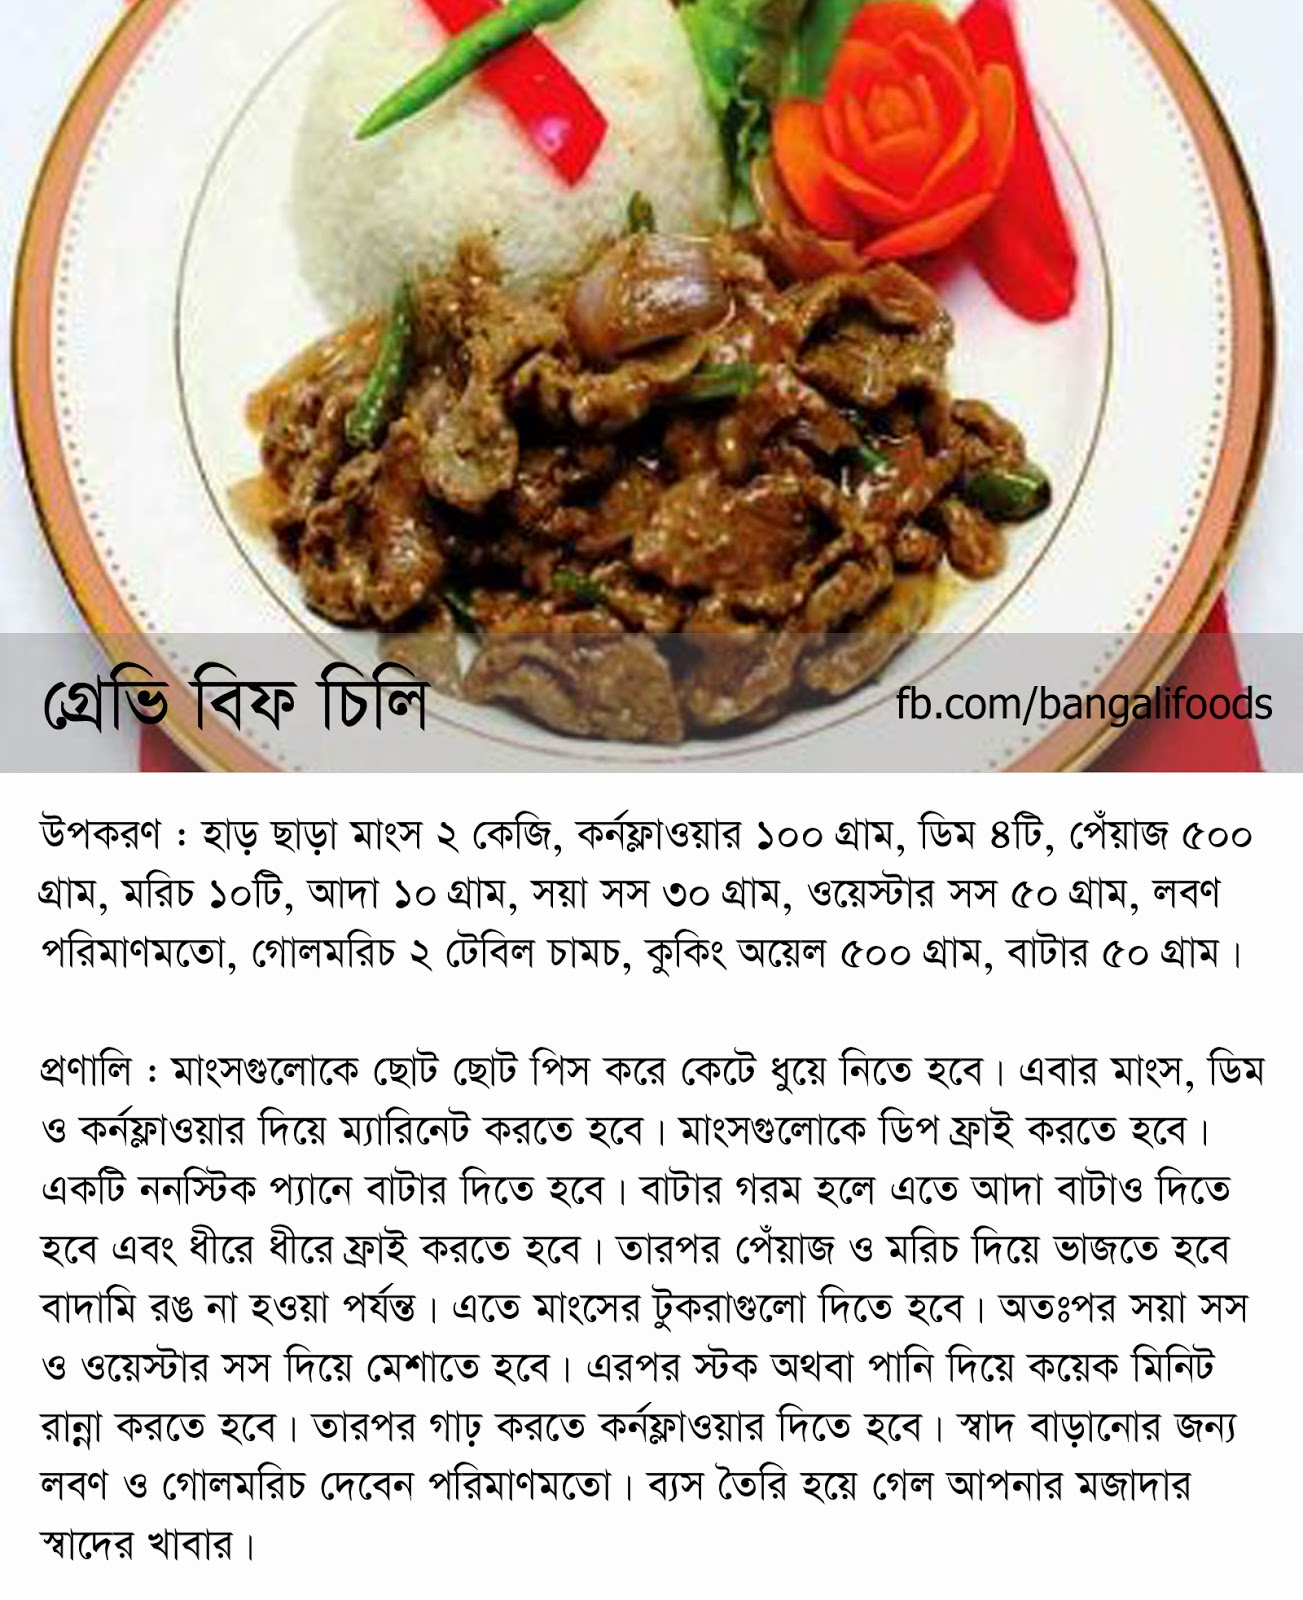 Bangali foods beef recipe for the eid ul adha 2013 gravy beef chili recipe in bangla font forumfinder Images